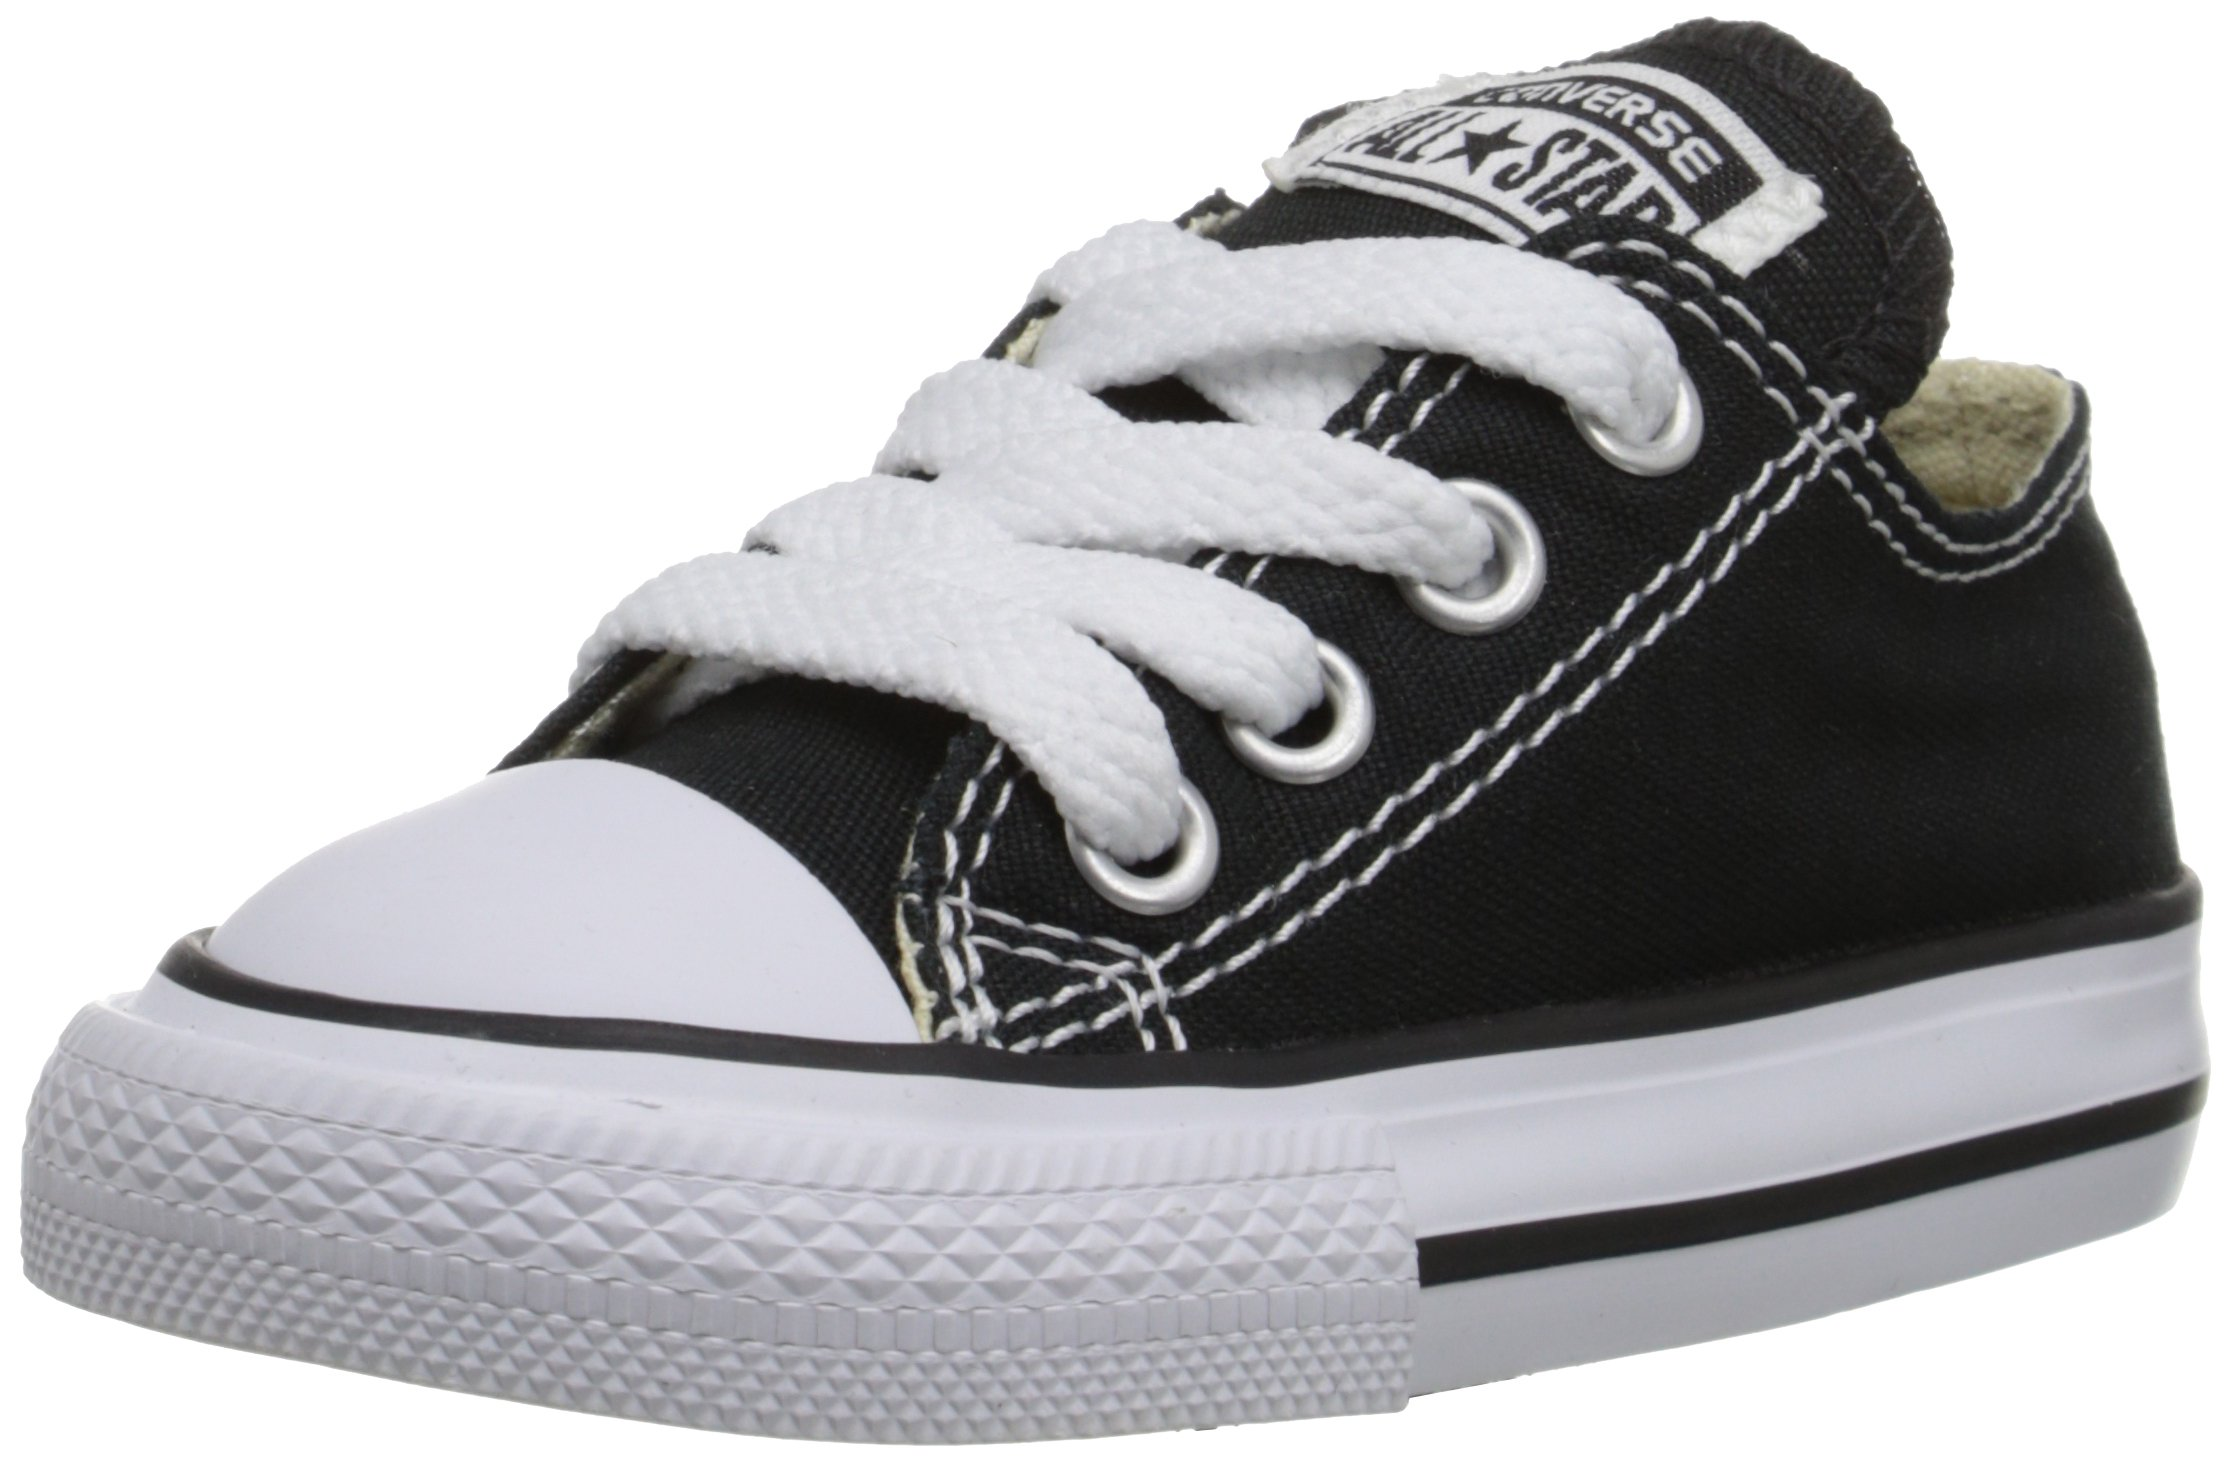 dbc0cb5ea77e51 Best Rated in Boys  Shoes   Helpful Customer Reviews - Amazon.com